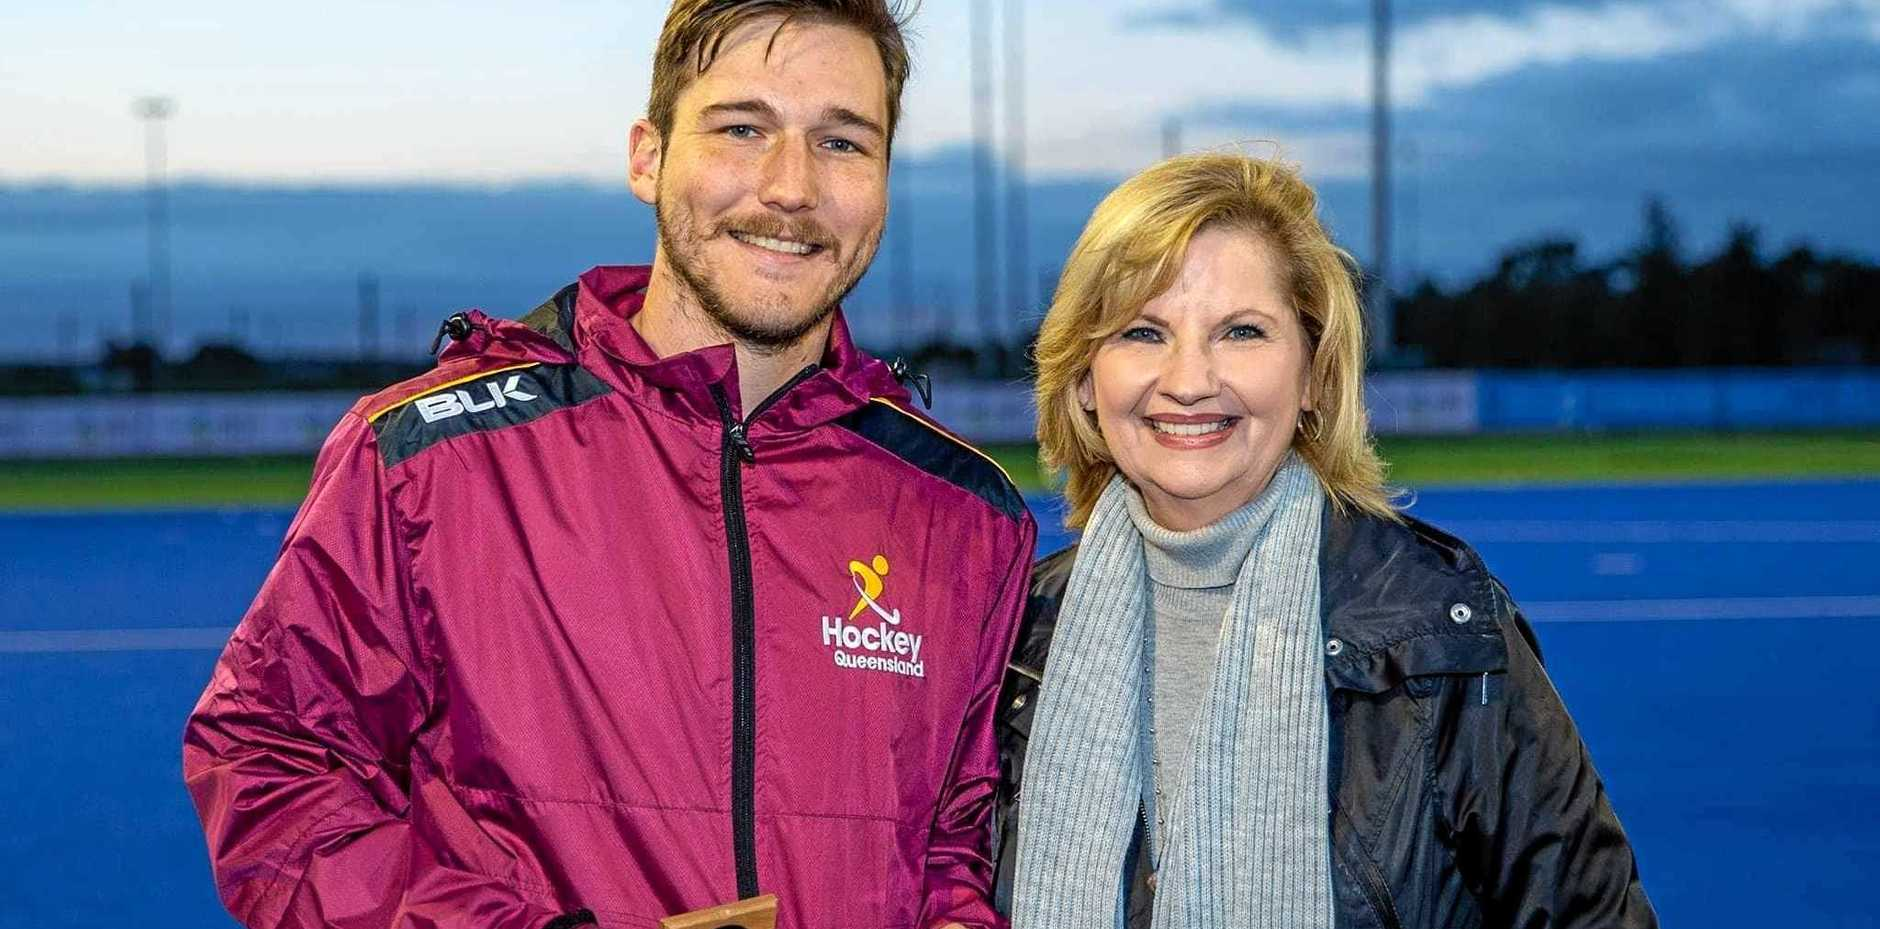 STAR MAN: Drew Wenzel, pictured with Shepparton mayor Kim O'Keefe, was named Player of the Tournament at the recent Australian Country Hockey Championships in Shepparton.